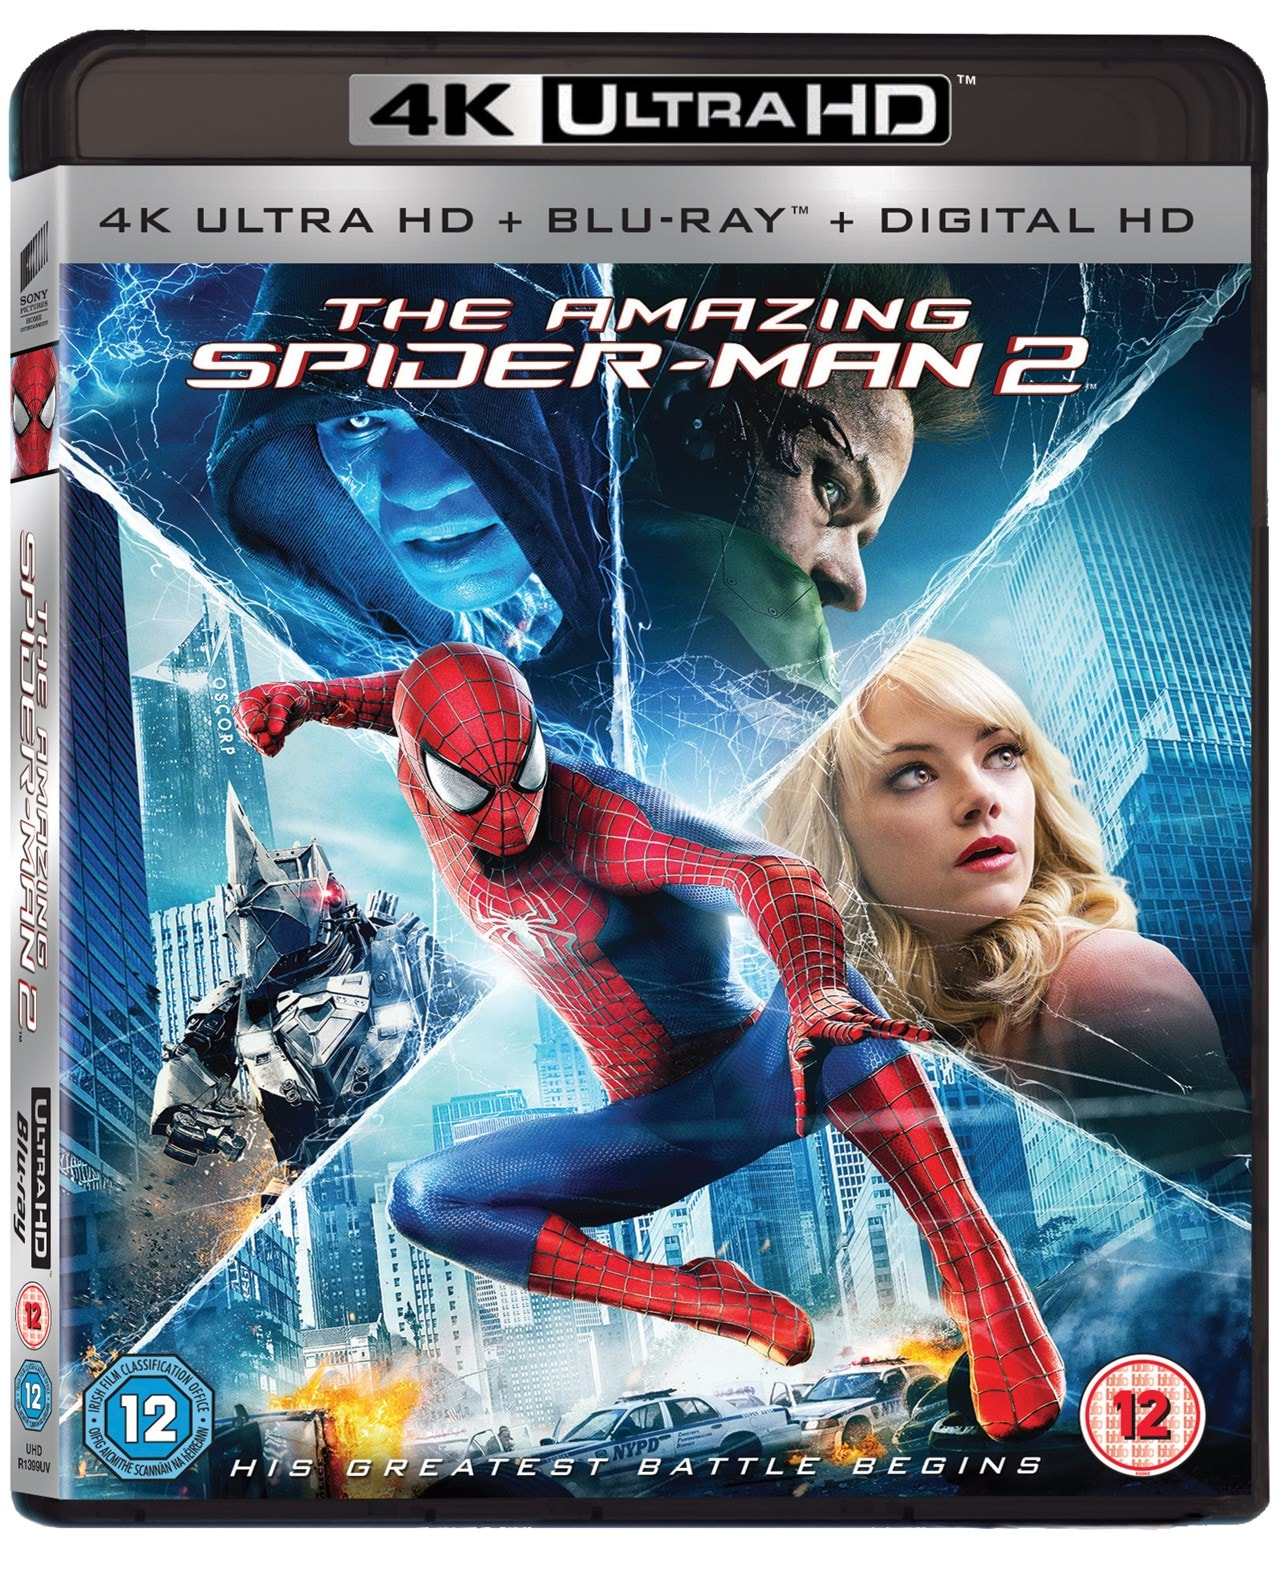 The Amazing Spider-Man 2 - 1